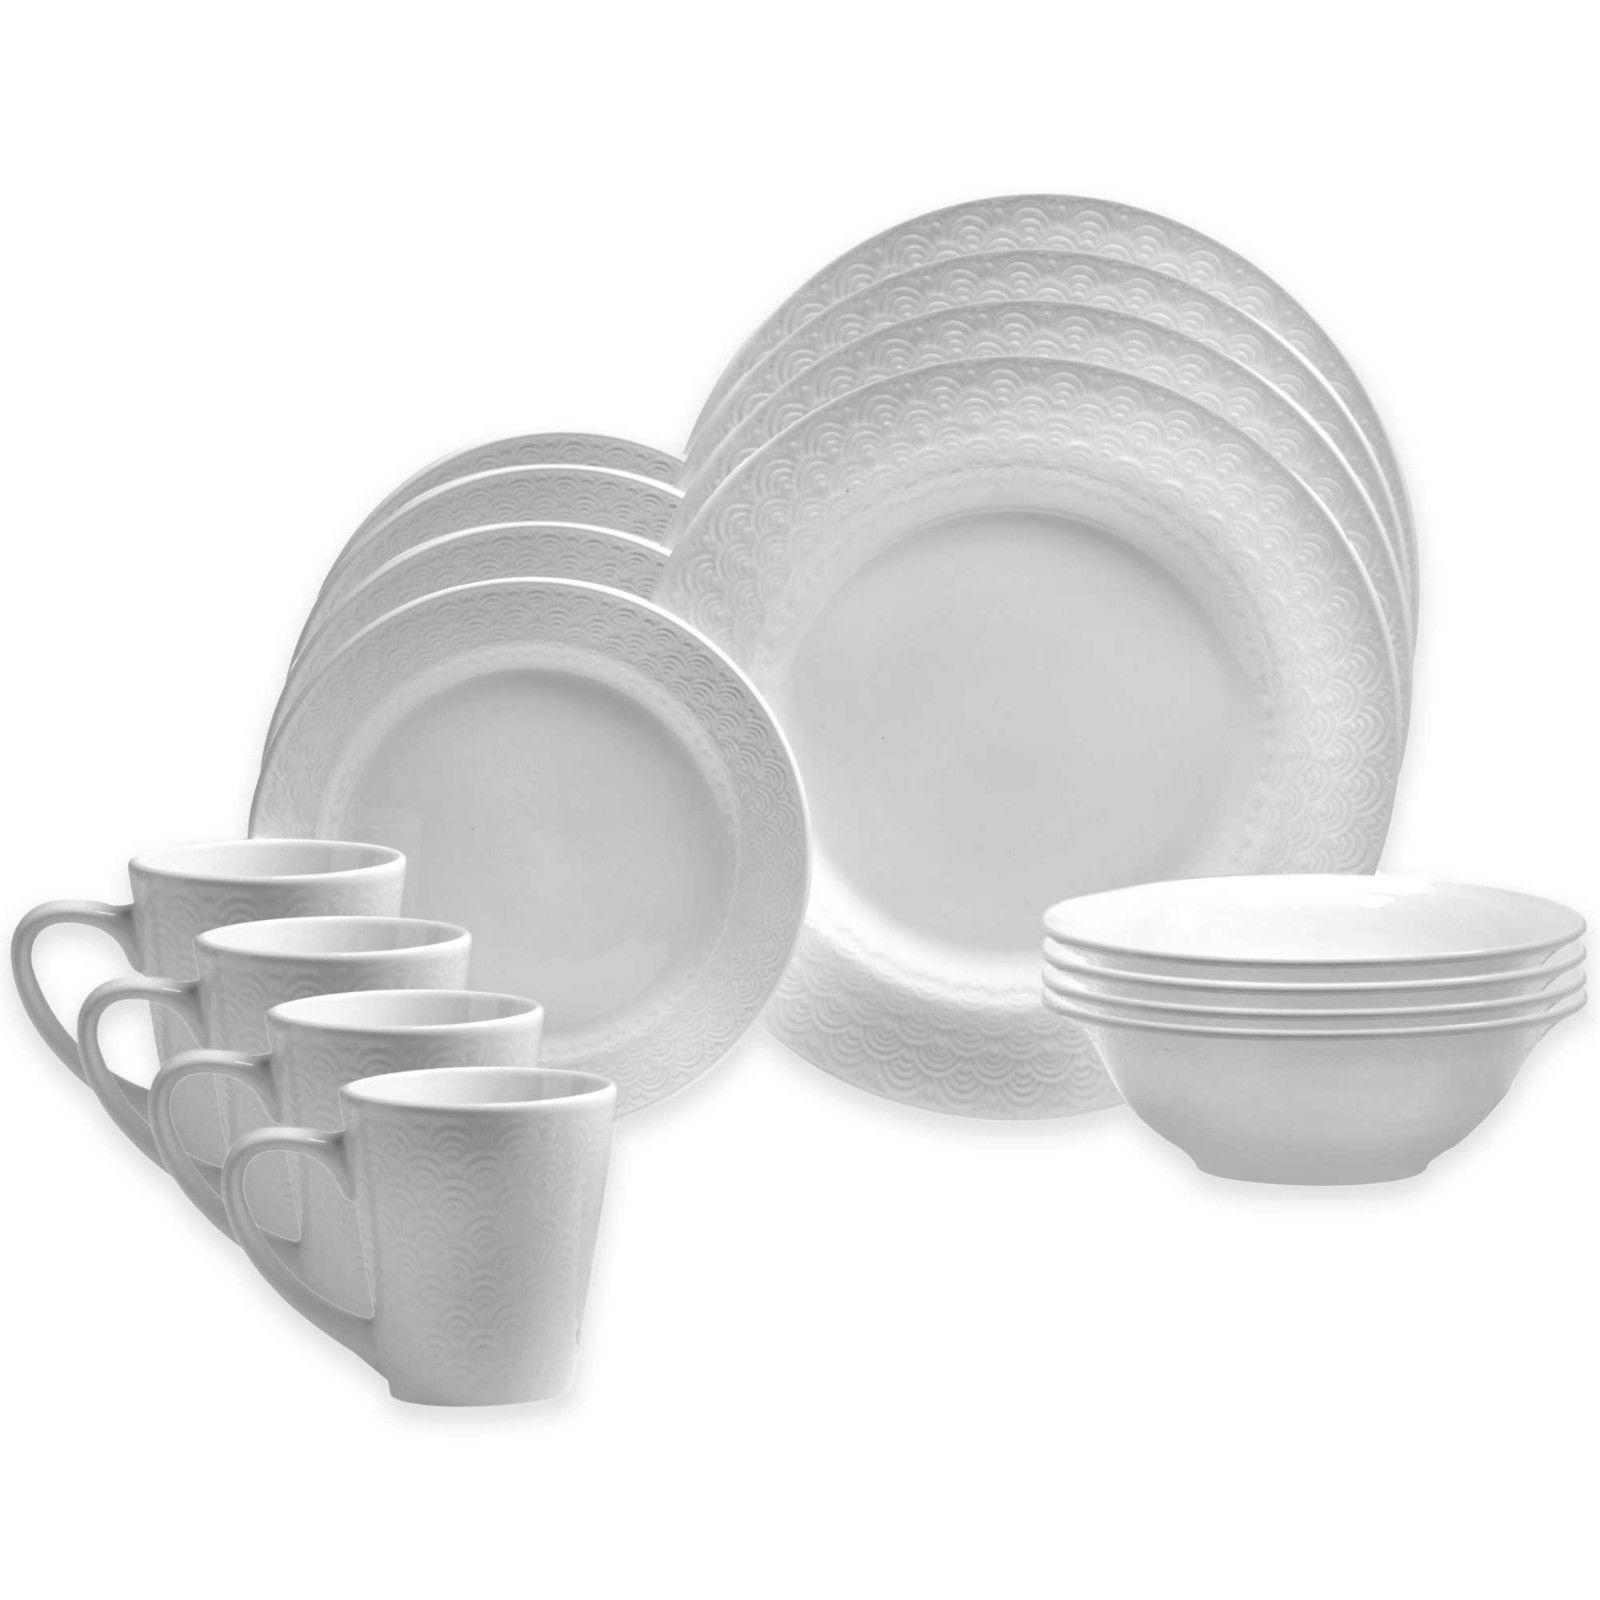 ** NEW ** Oneida Kato Porcelain 16-Pc Dinnerware Set ** FACT